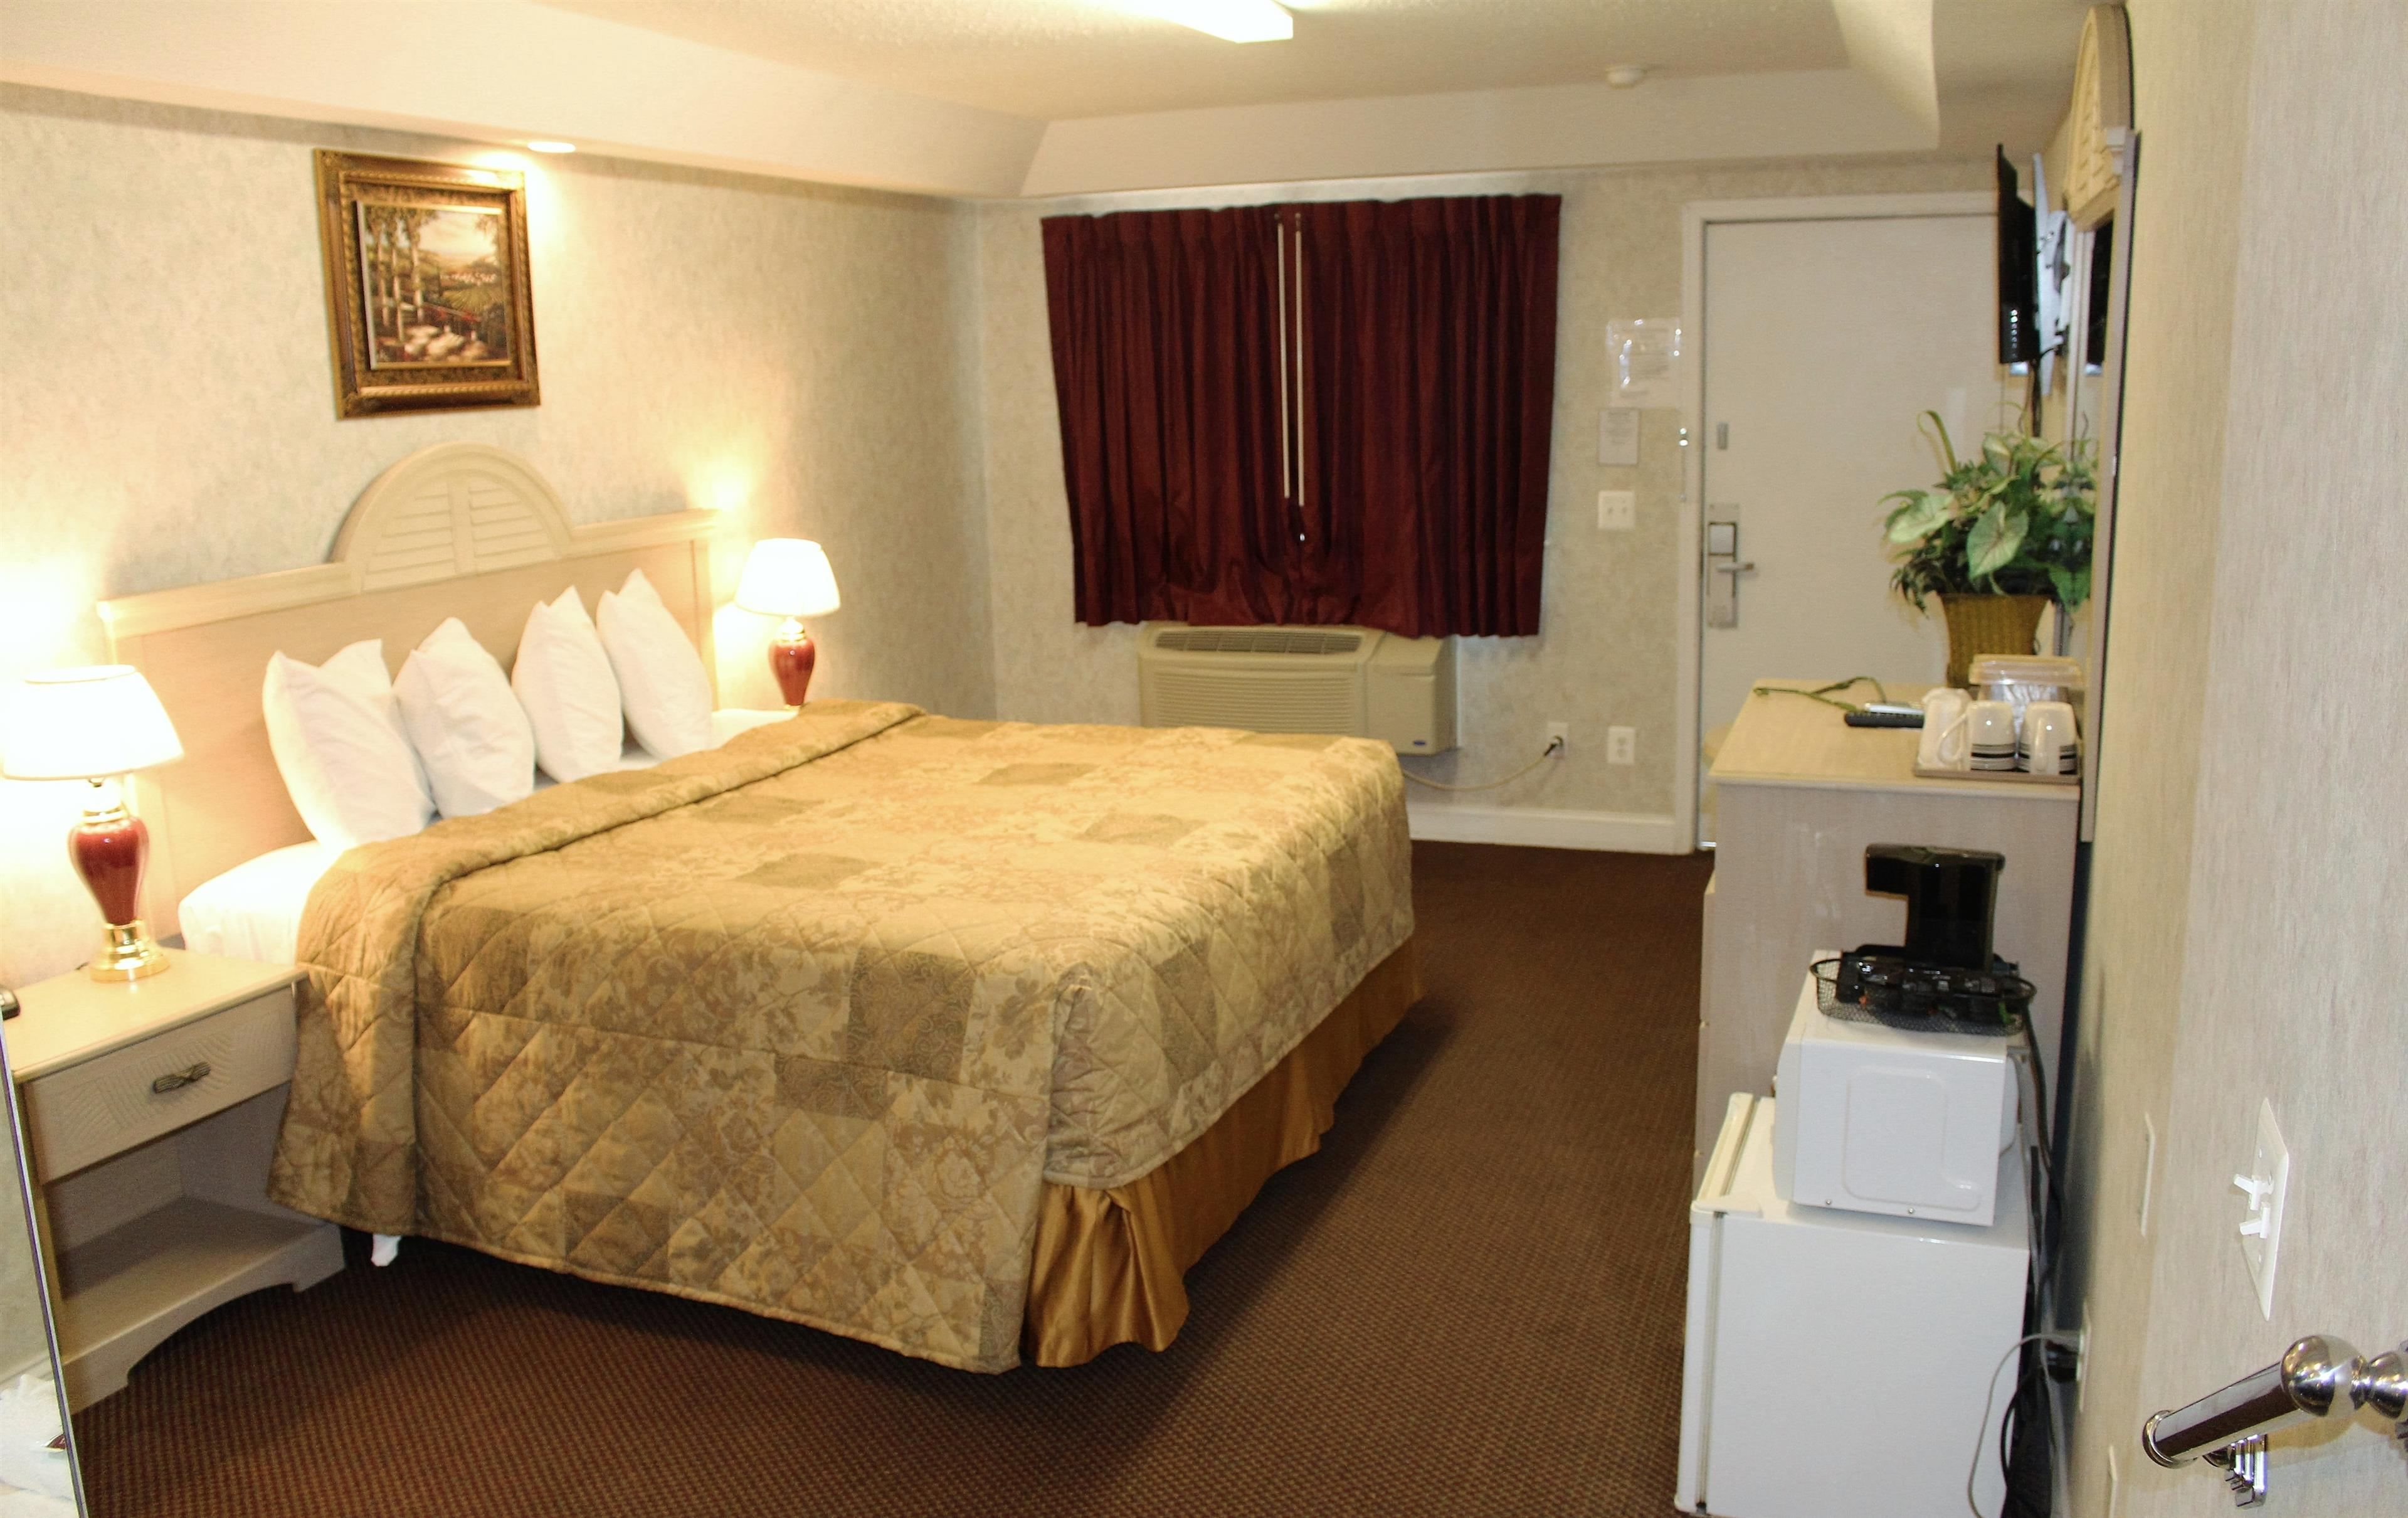 Hotels With Jacuzzi In Room Deal Nj